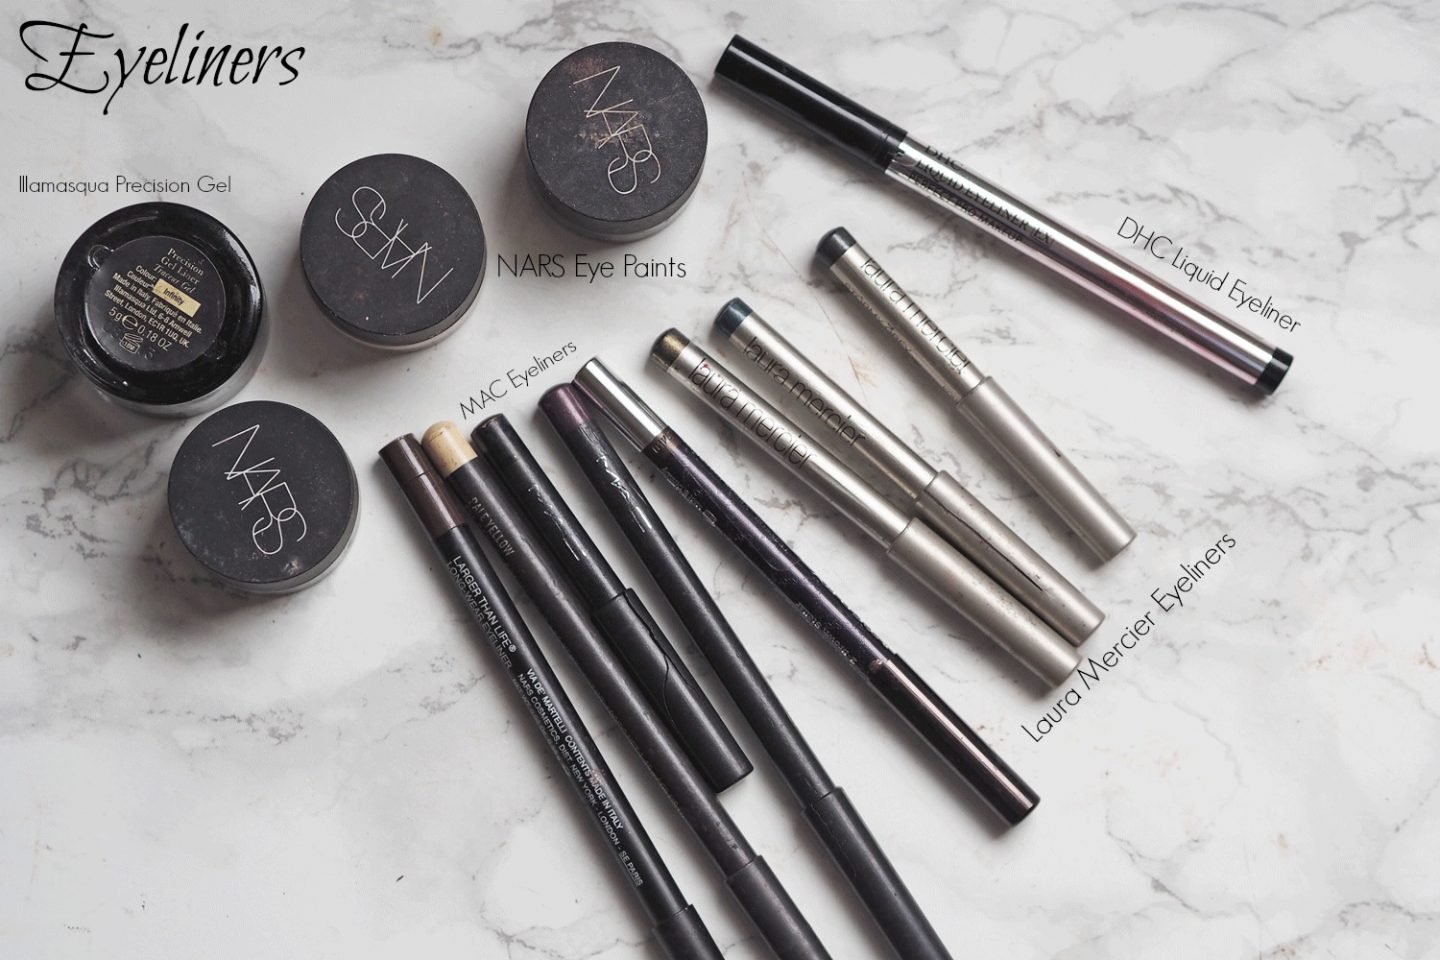 eyeliners for professional makeup artists